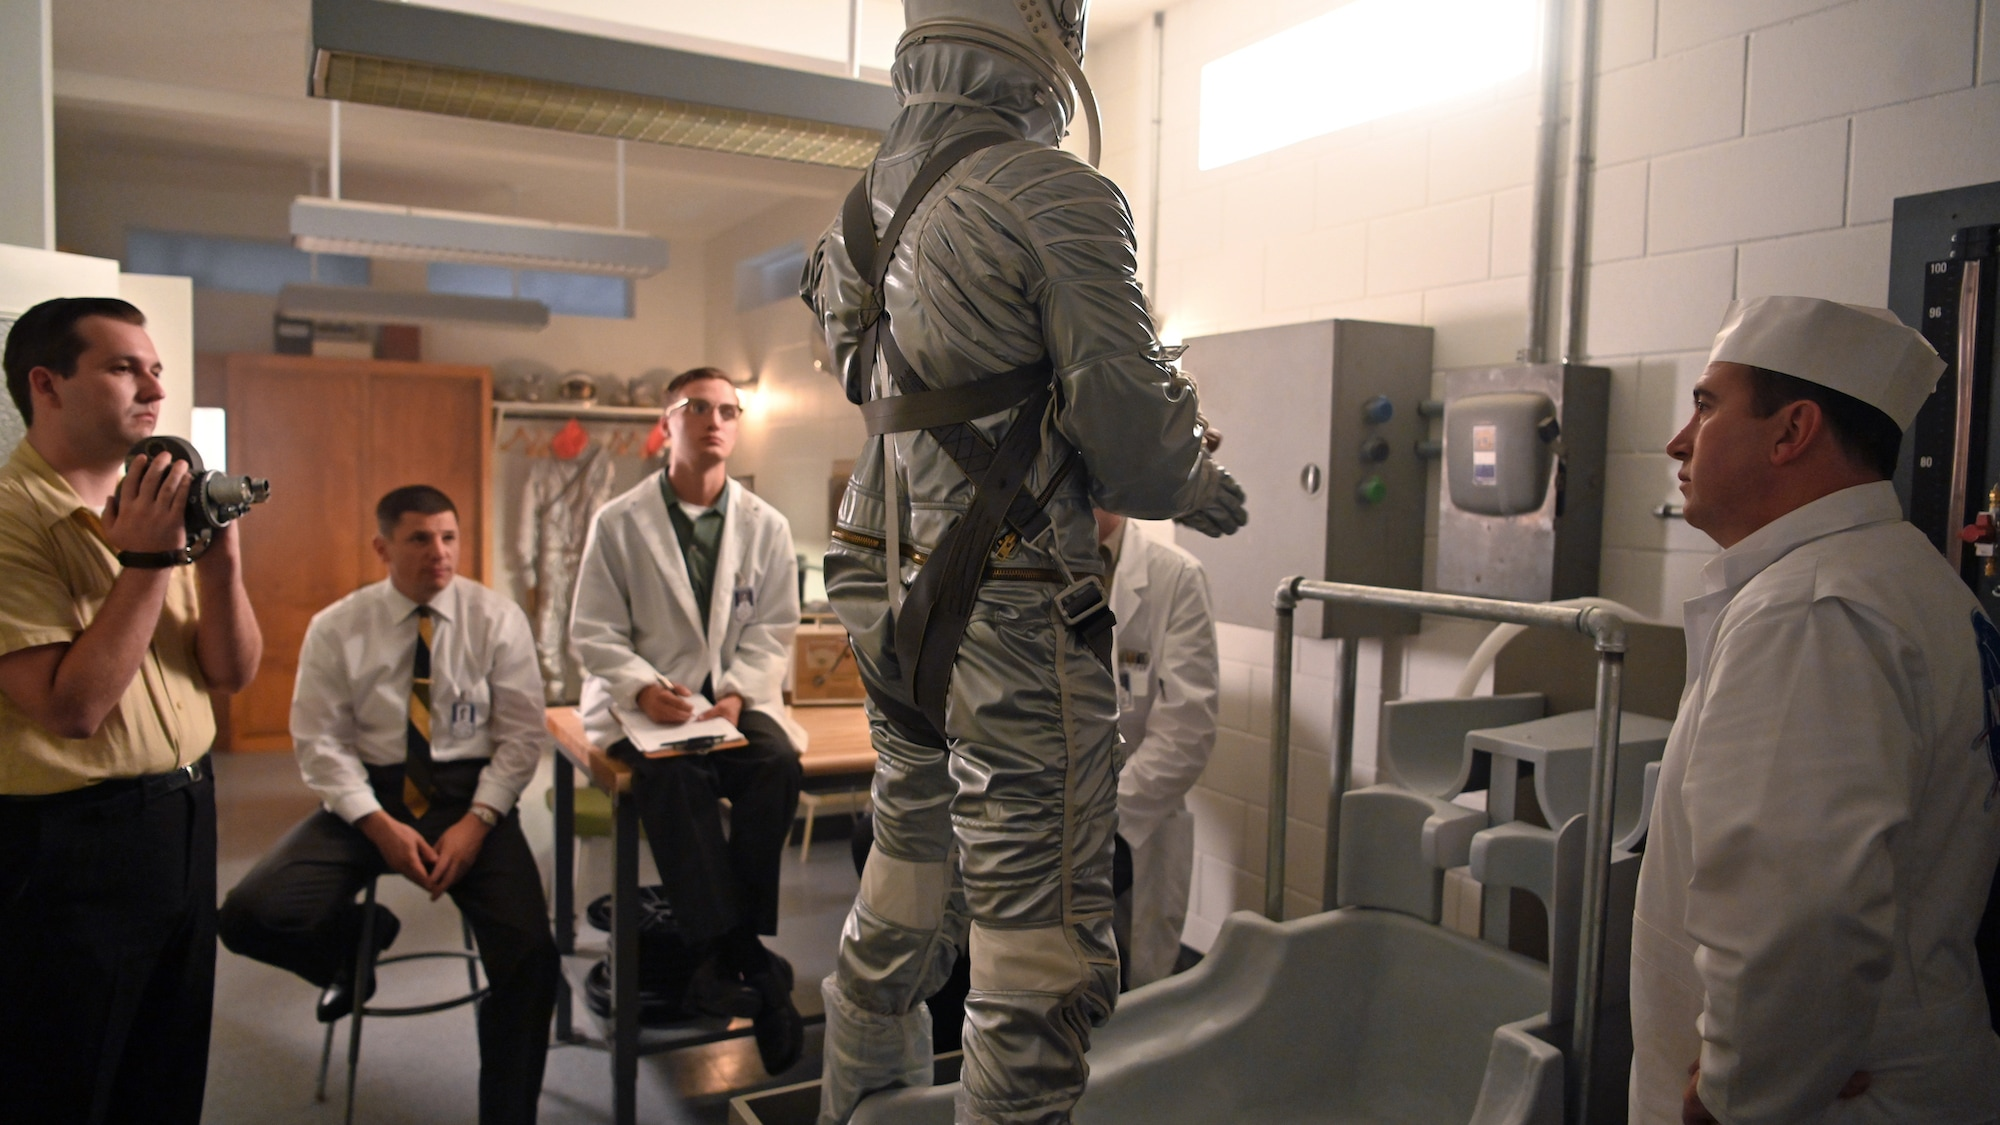 Alan Shepard (standing center), played by Jake McDorman, in space suit in National Geographic's THE RIGHT STUFF streaming on Disney+. (National Geographic/Gene Page)